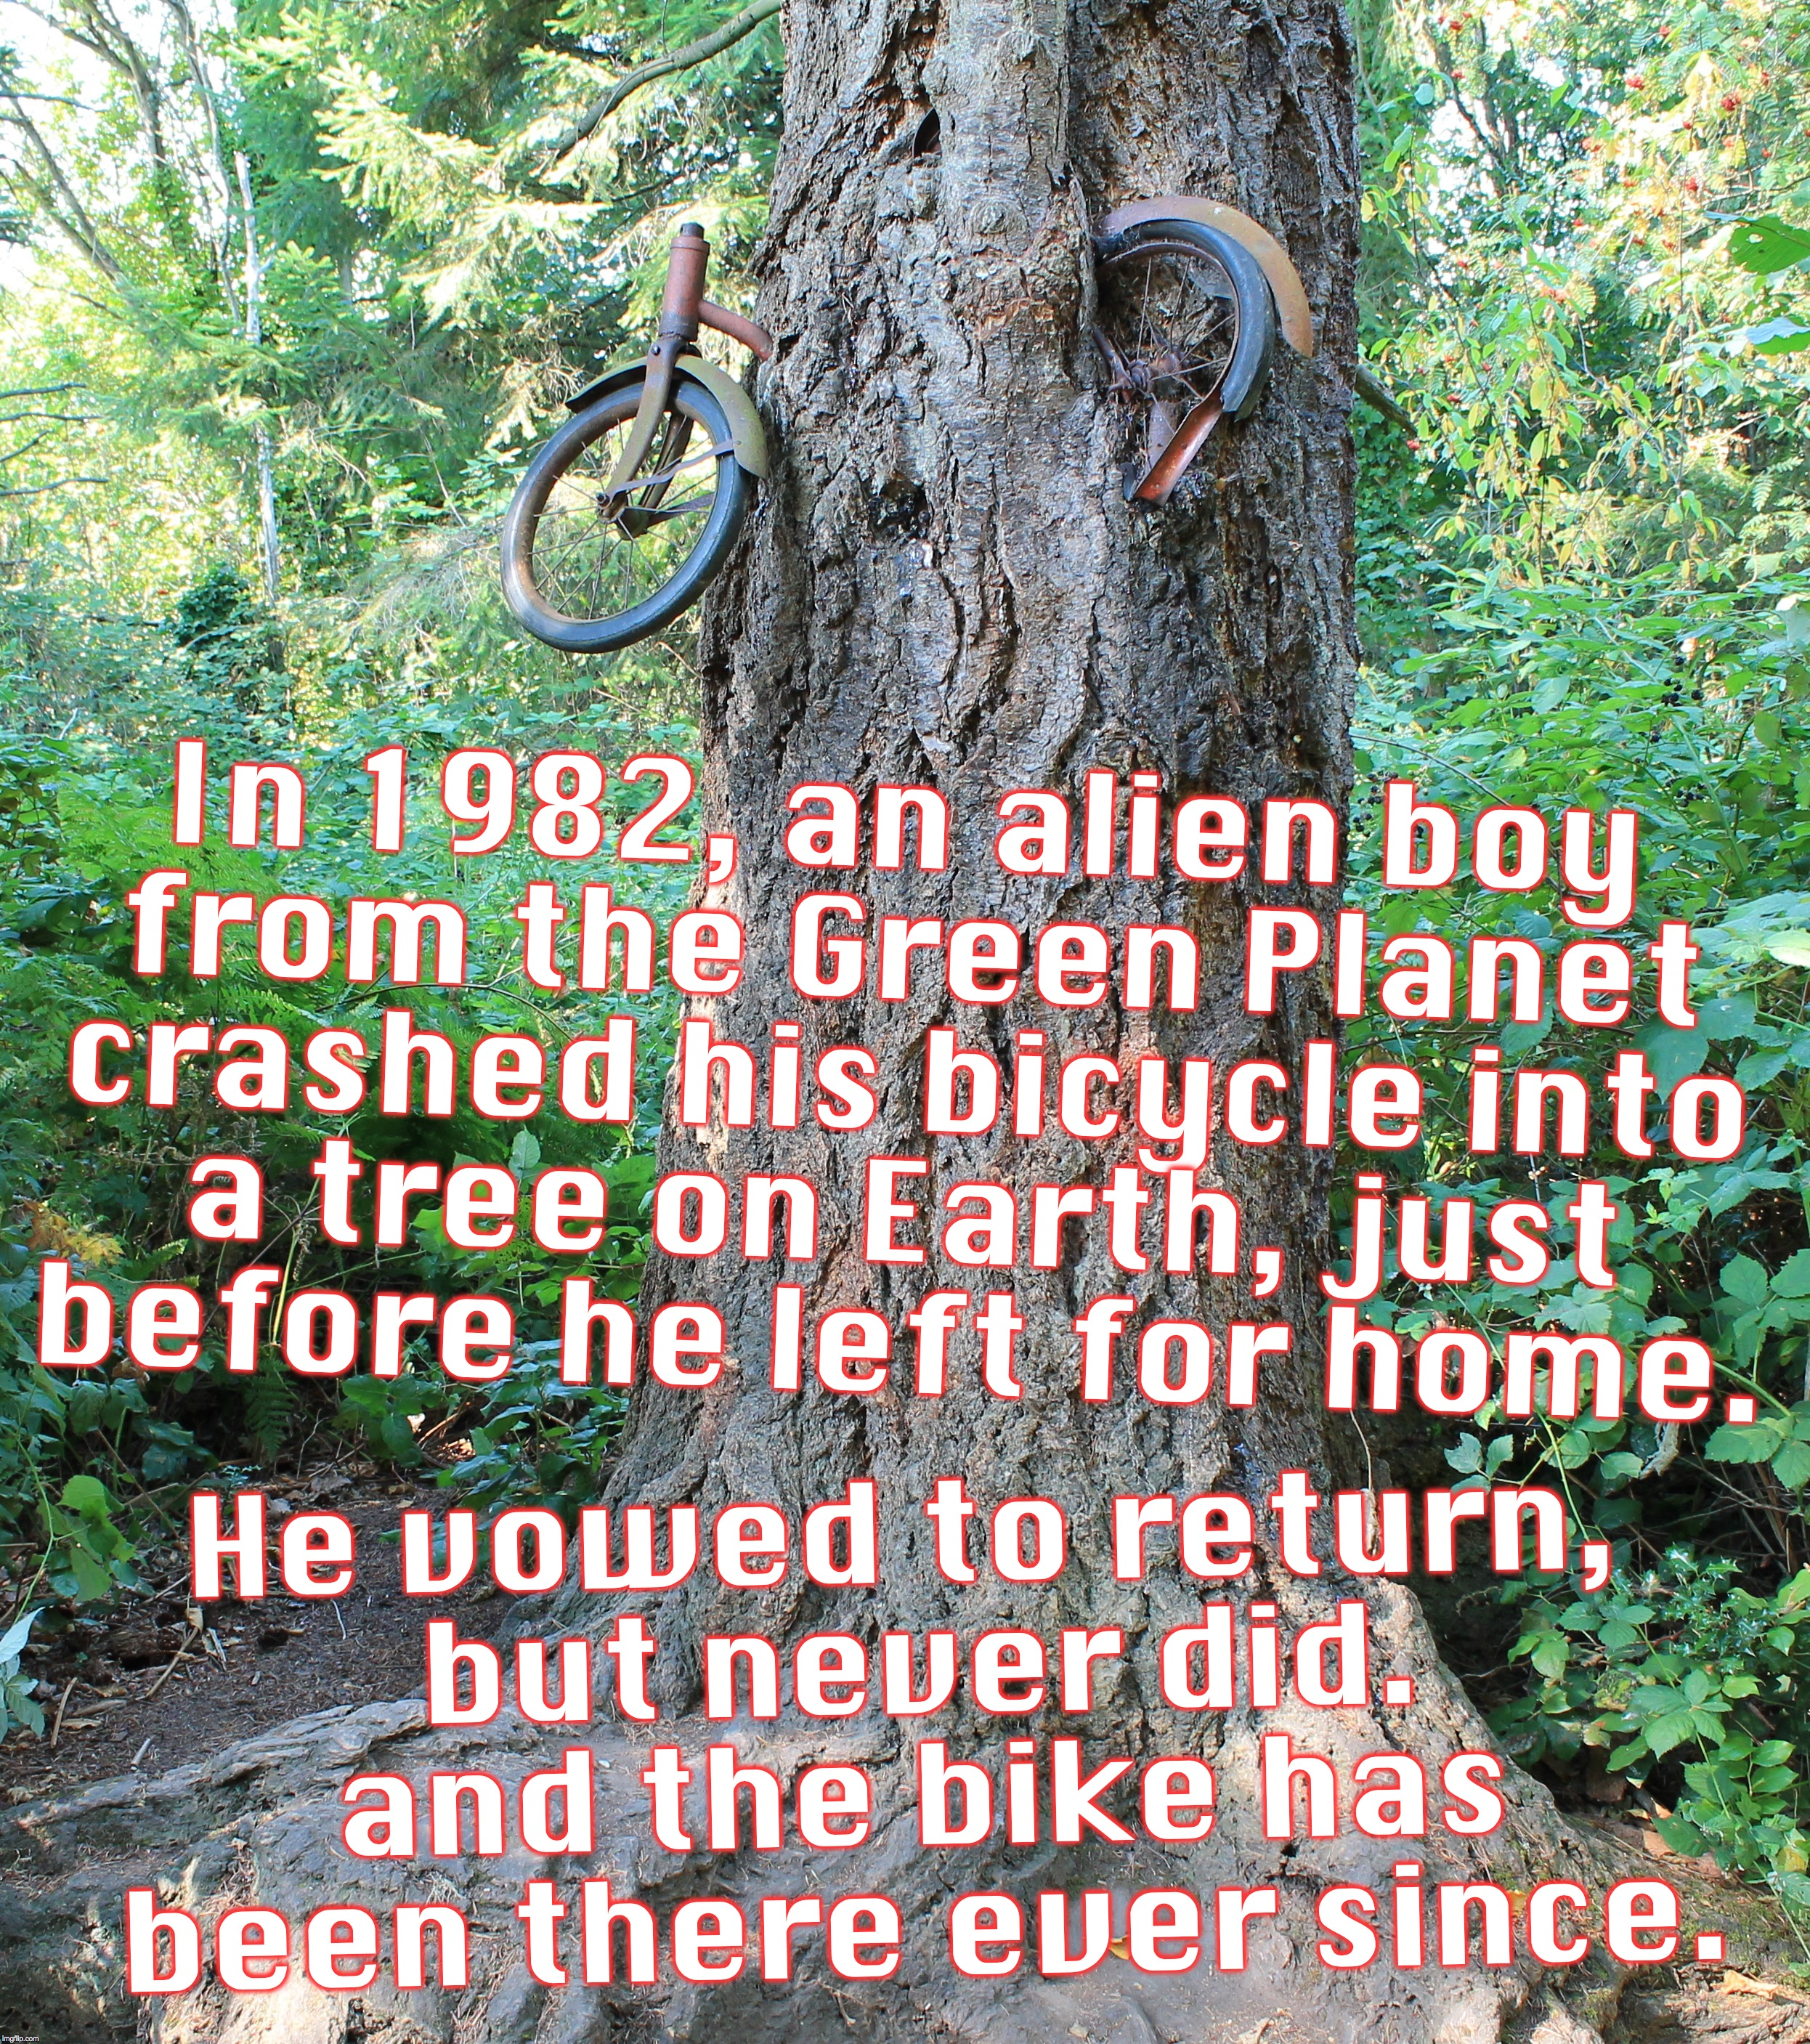 if you build a hoax, they will believe. | In 1982, an alien boy from the Green Planet crashed his bicycle into a tree on Earth, just before he left for home. He vowed to return, but  | image tagged in extraterrestrial,bicycle,tree | made w/ Imgflip meme maker